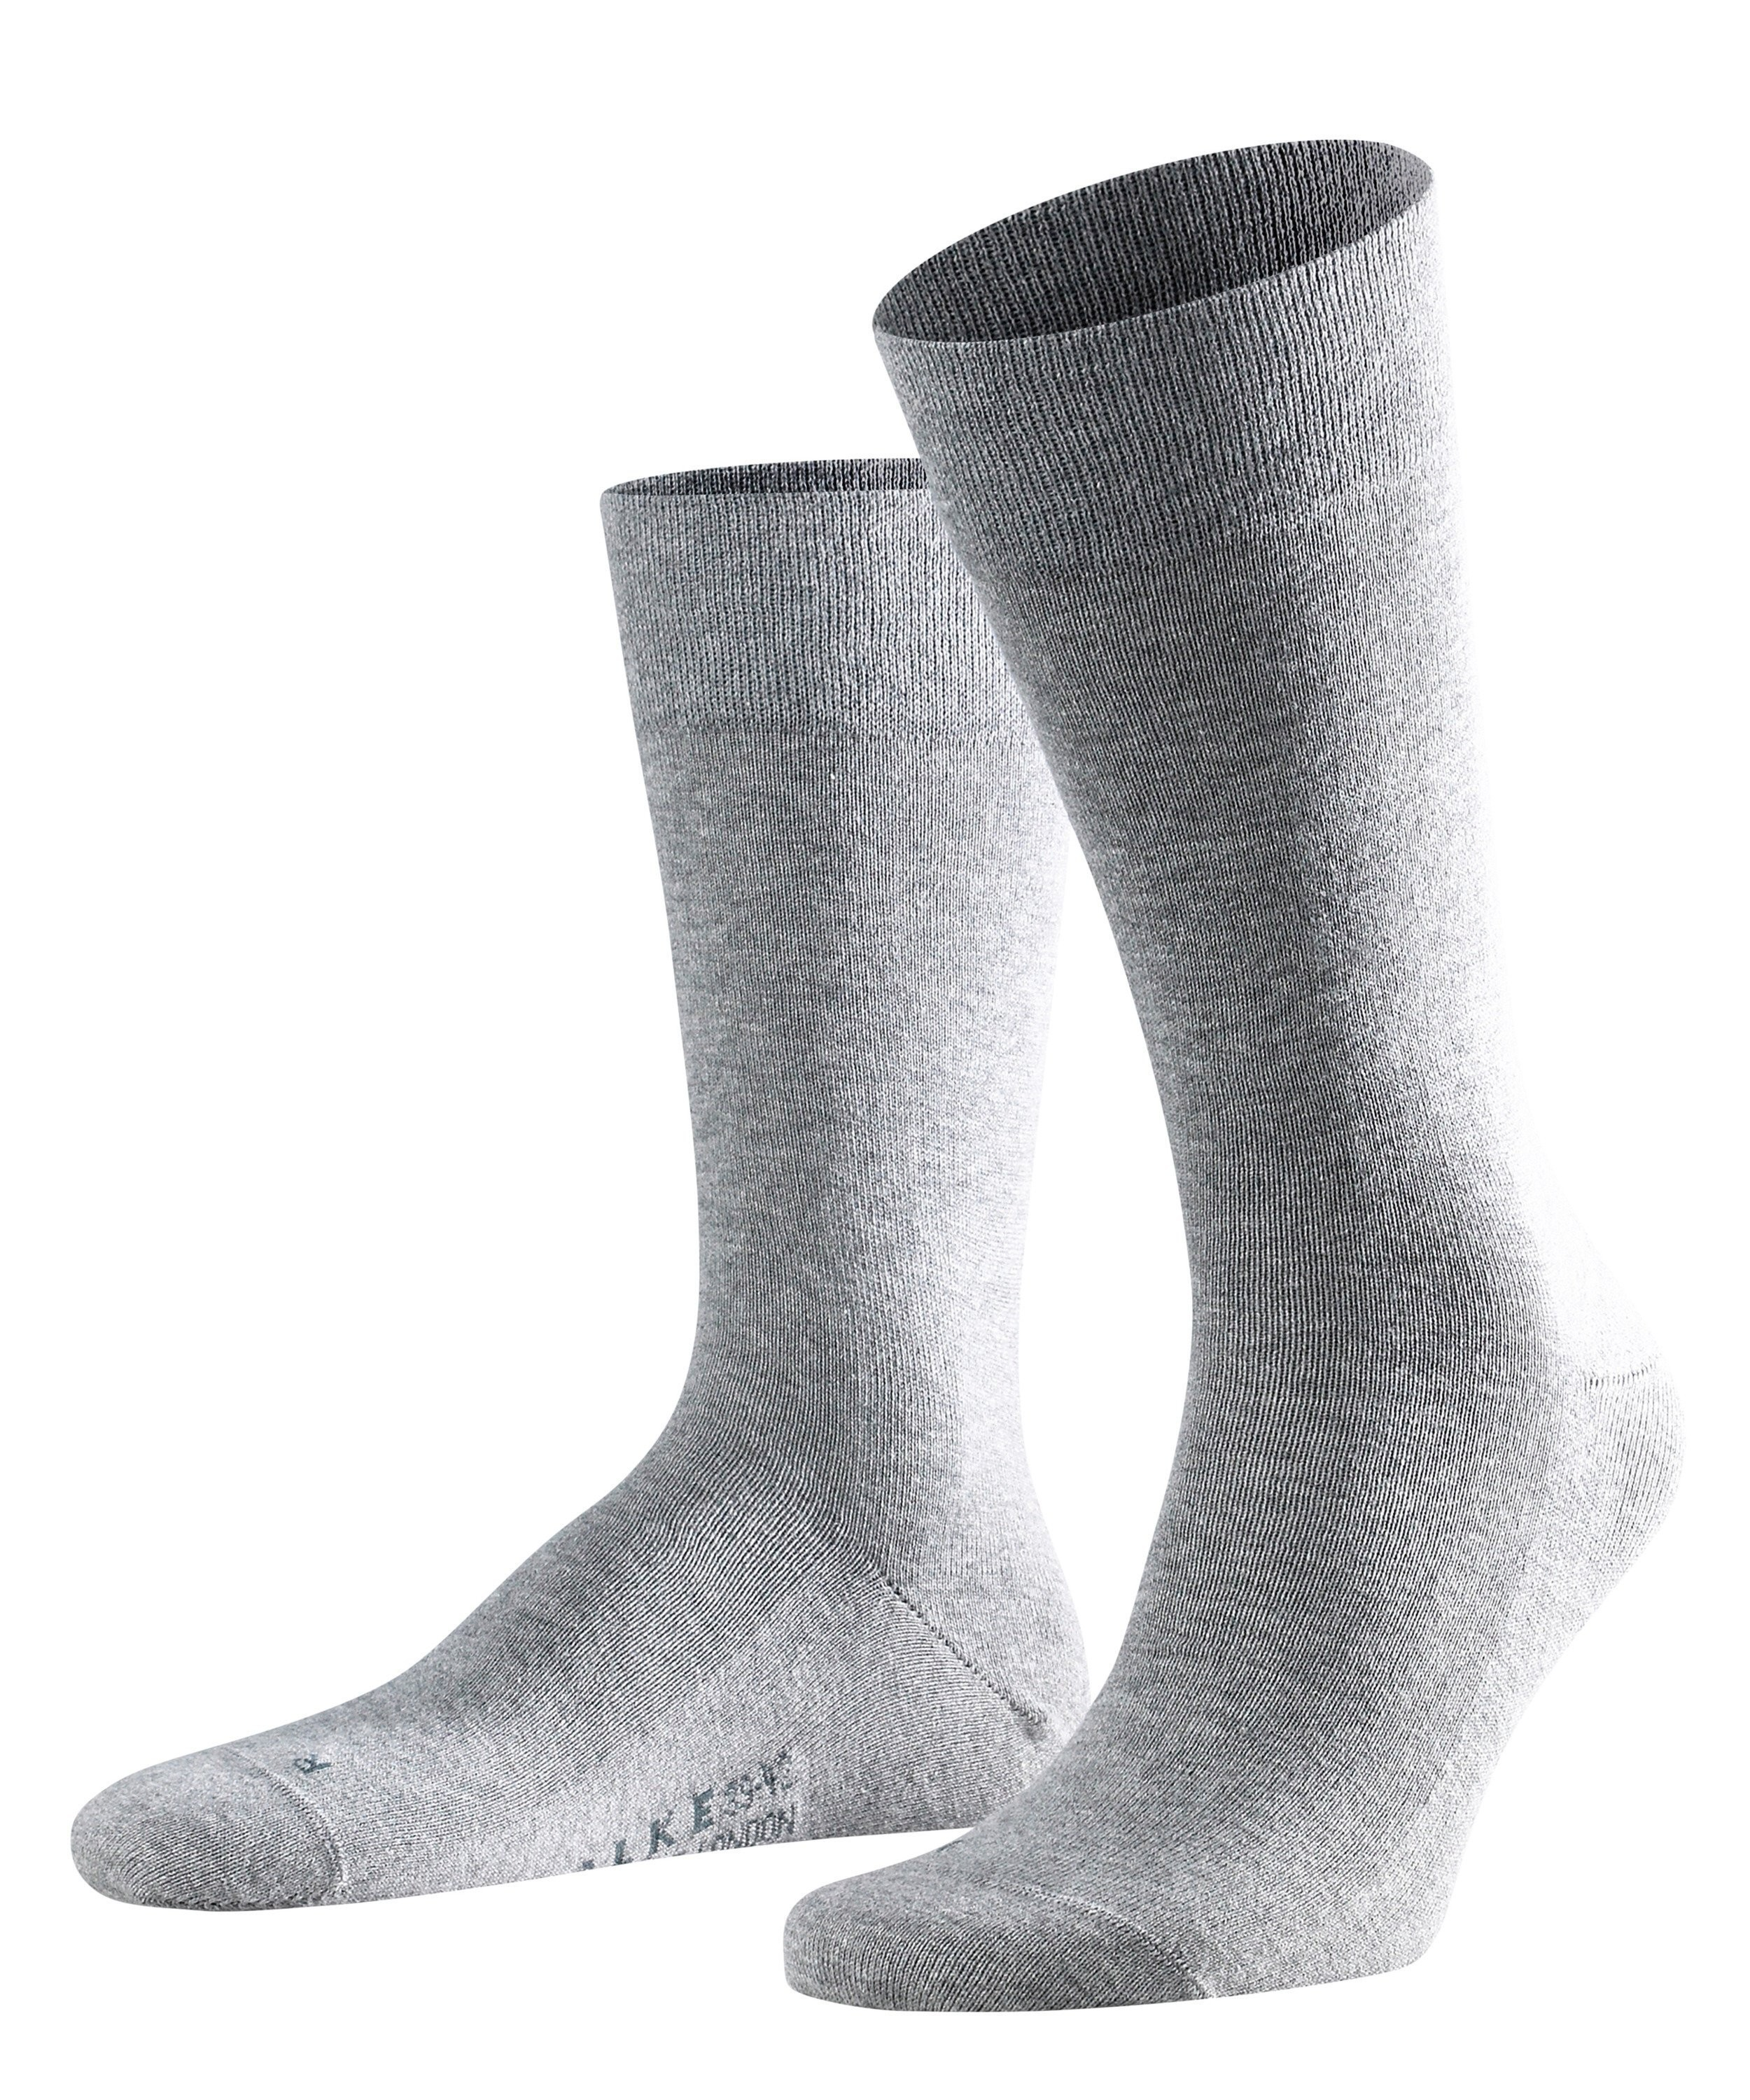 Chaussette Homme Sans Elastiques - 94% Coton - Falke Men Sensitive London 14616 Gris Light Mel 3390